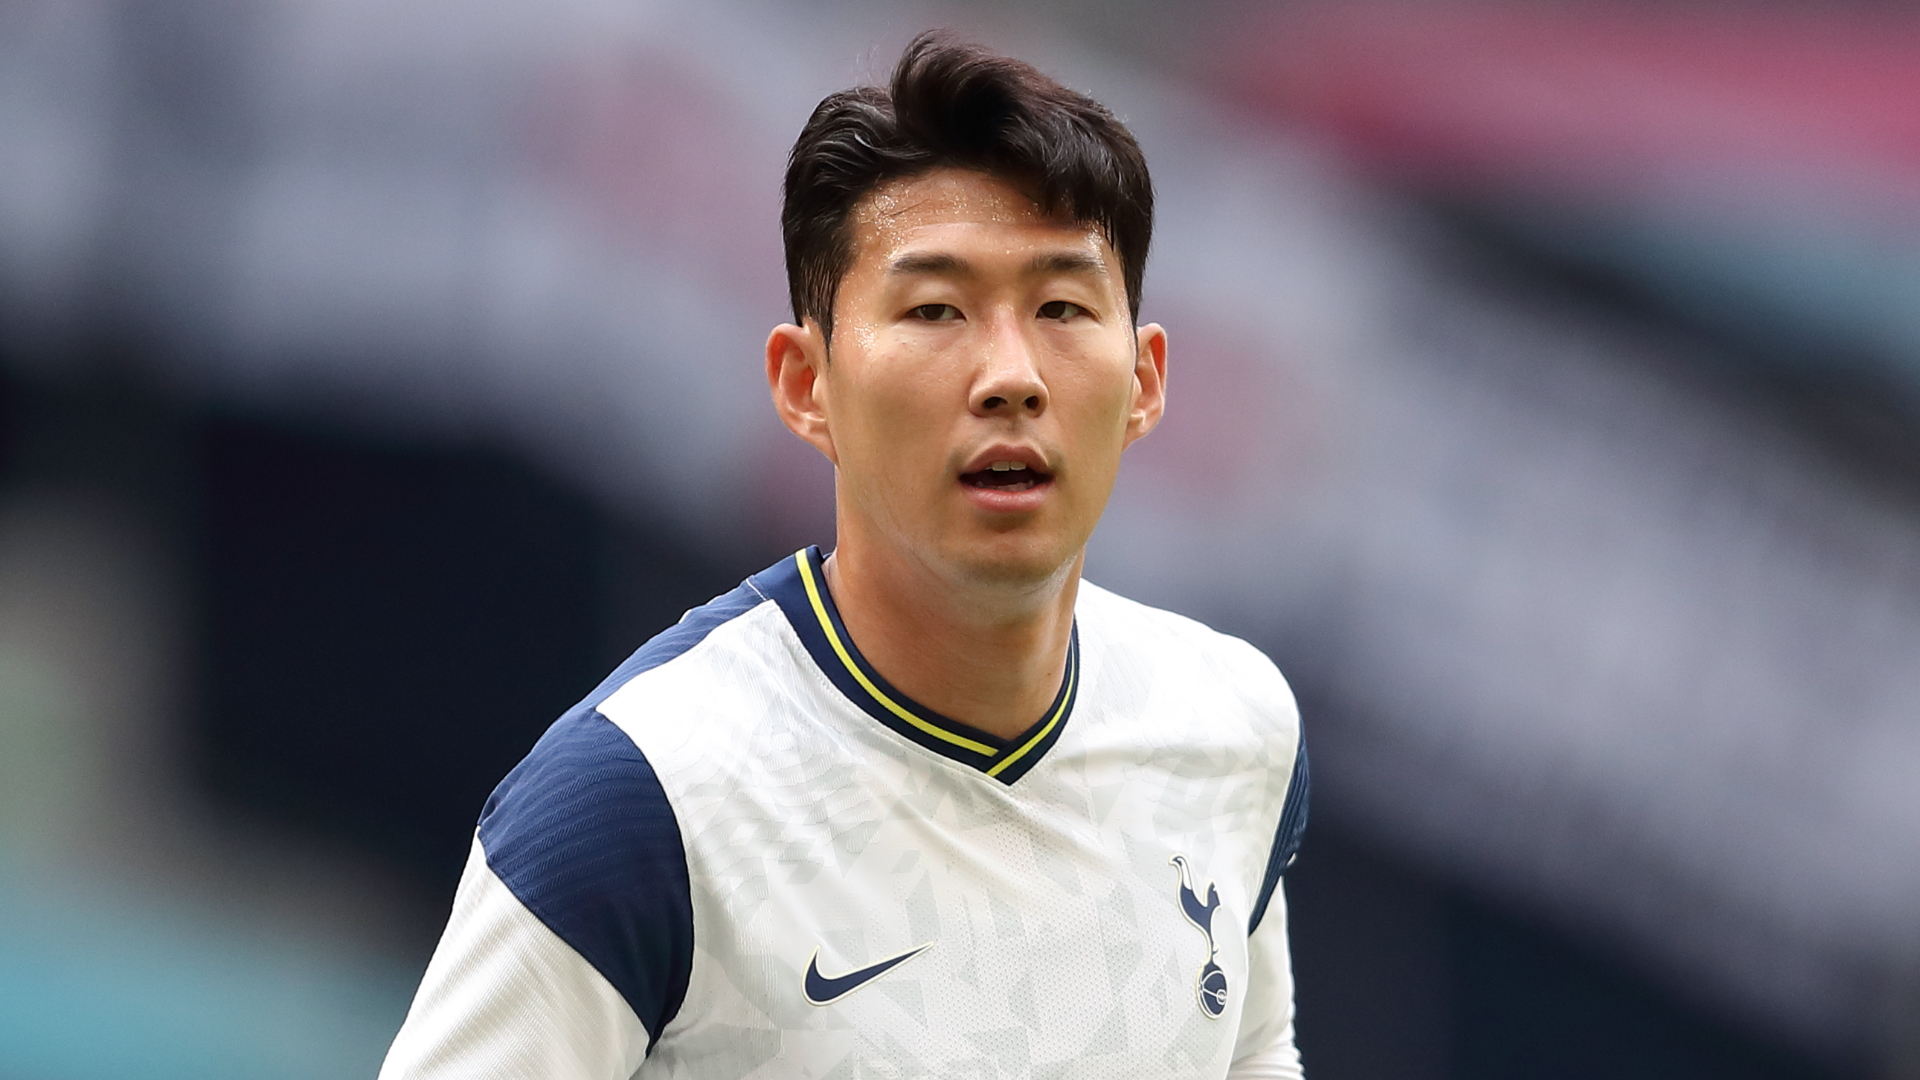 Mourinho gives return date for injured Tottenham star Son